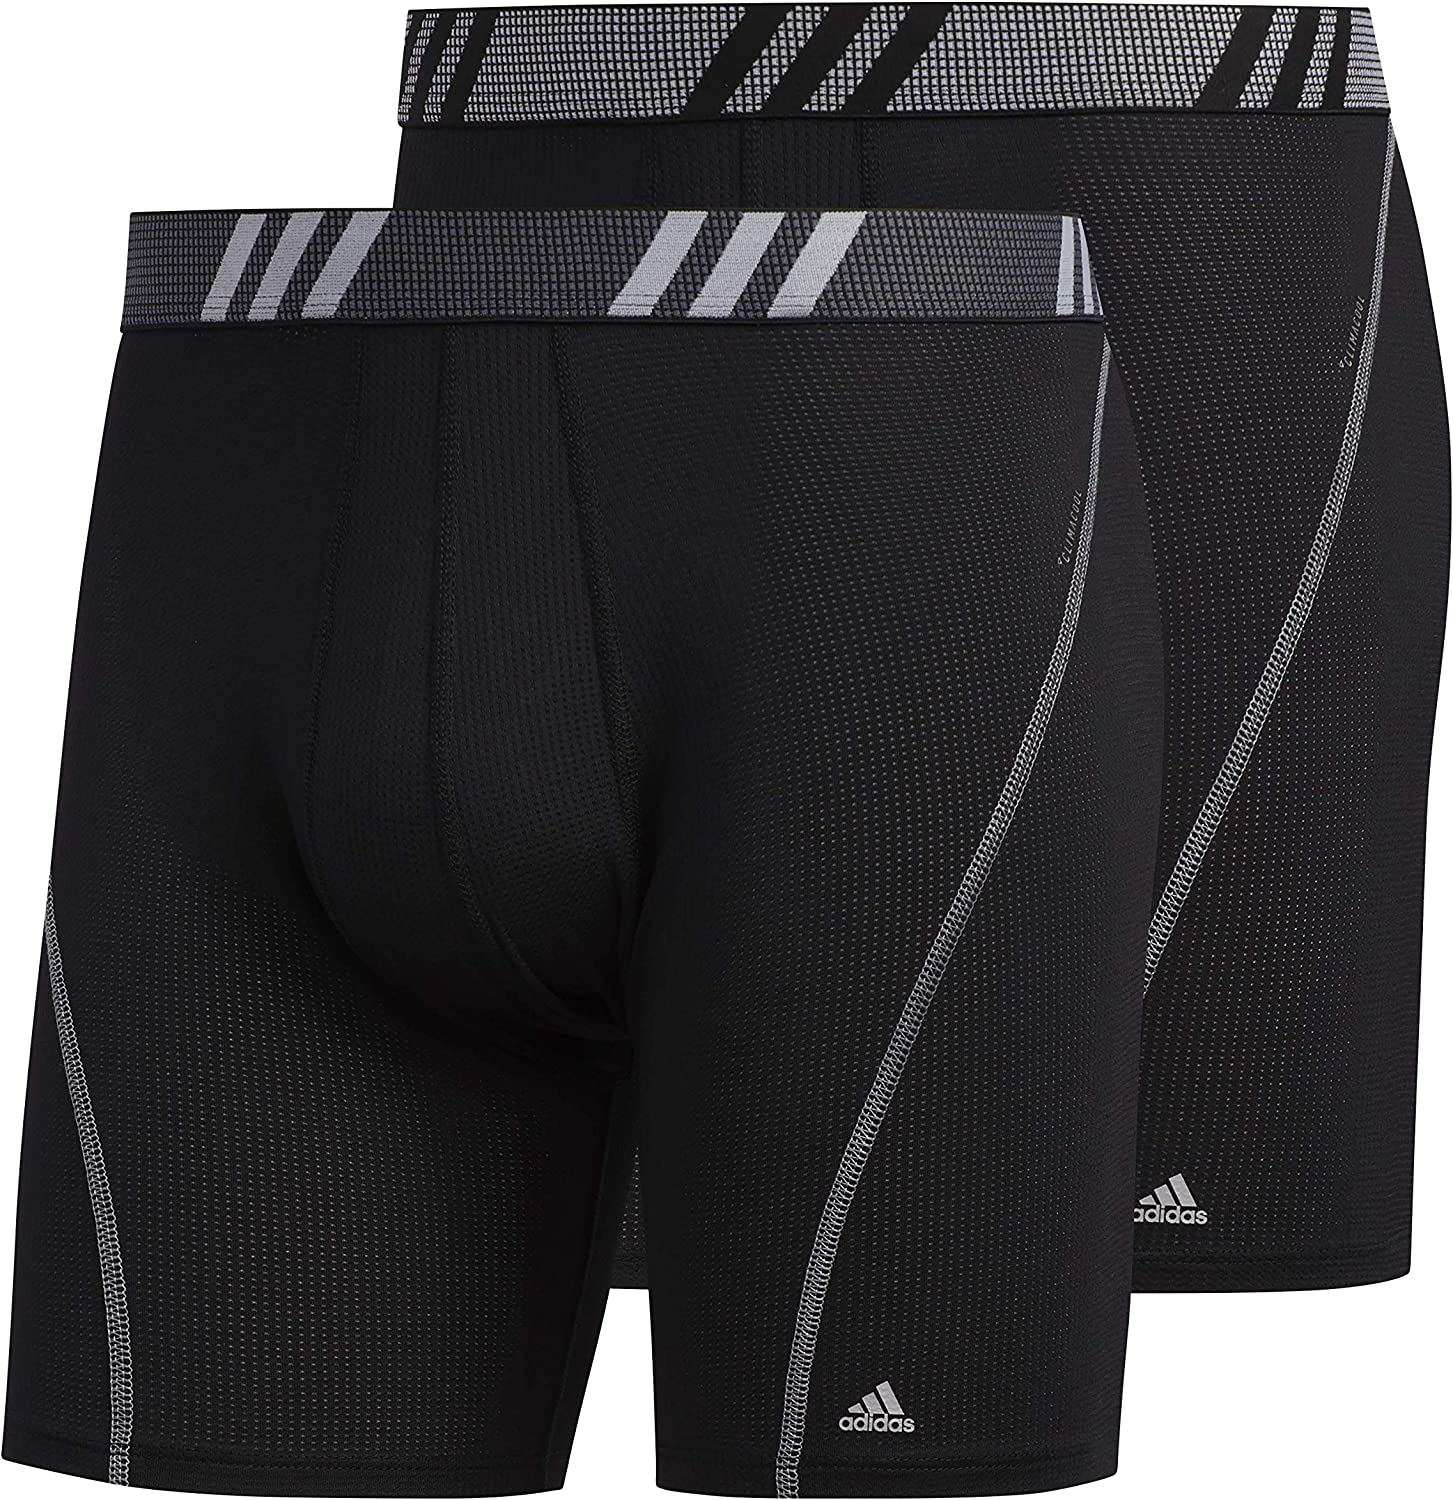 adidas Men's Performance Mesh Boxer Briefs Underwear (2-Pack)